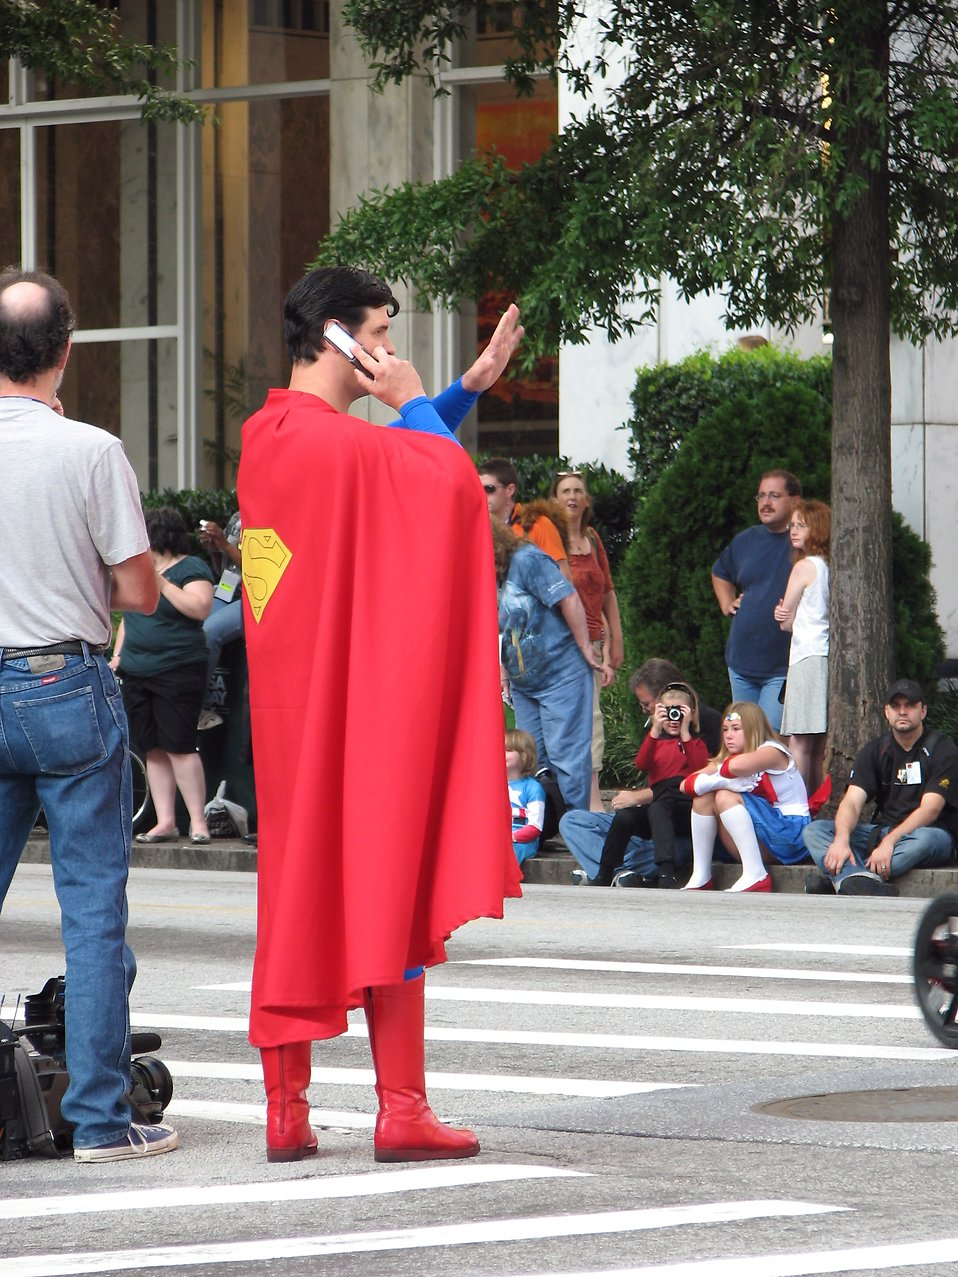 Superman on a cell phone crossing the street at 2008 Dragoncon parade : Free Stock Photo